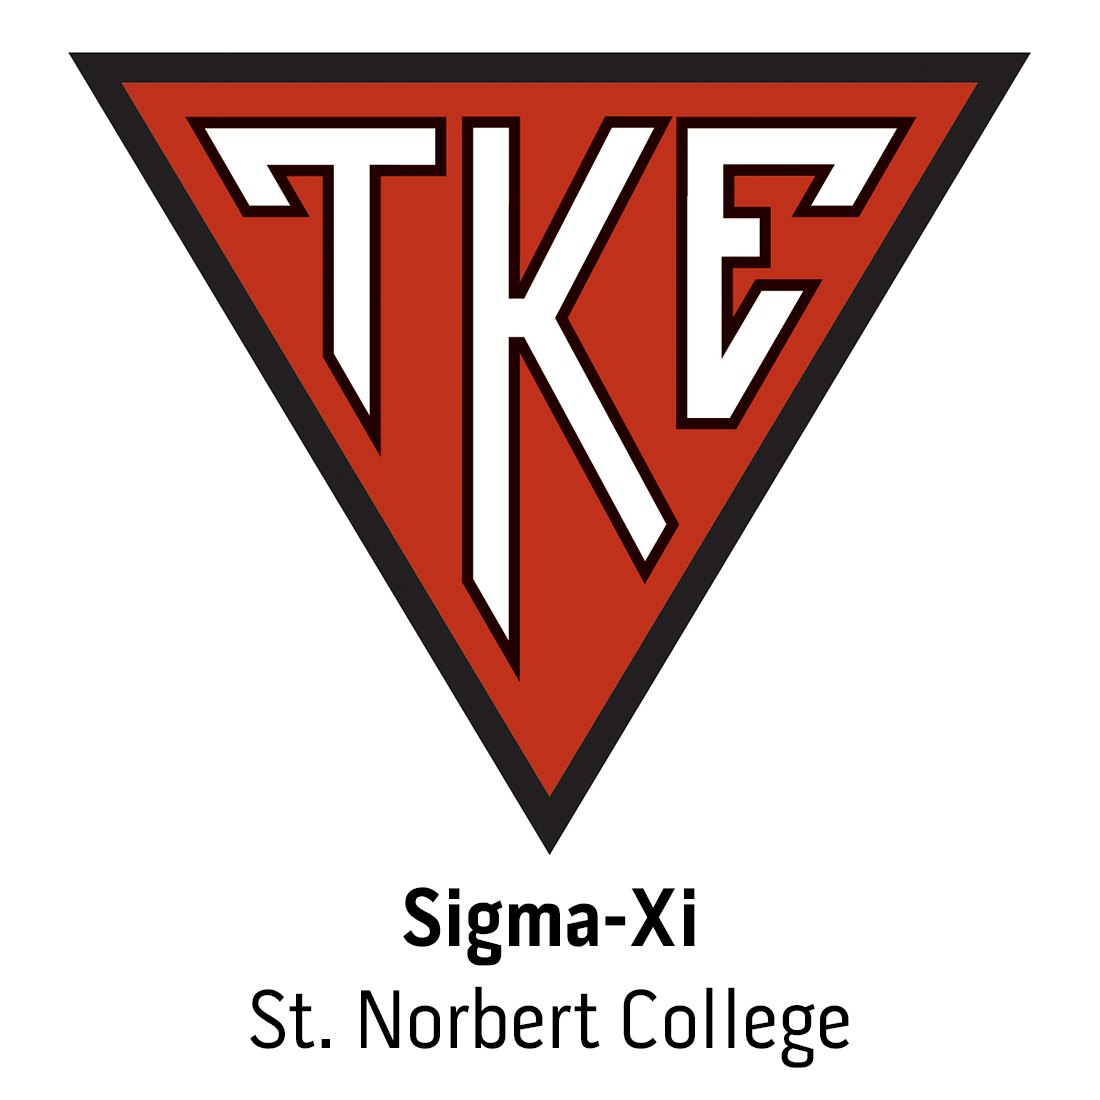 Sigma-Xi C at St. Norbert College